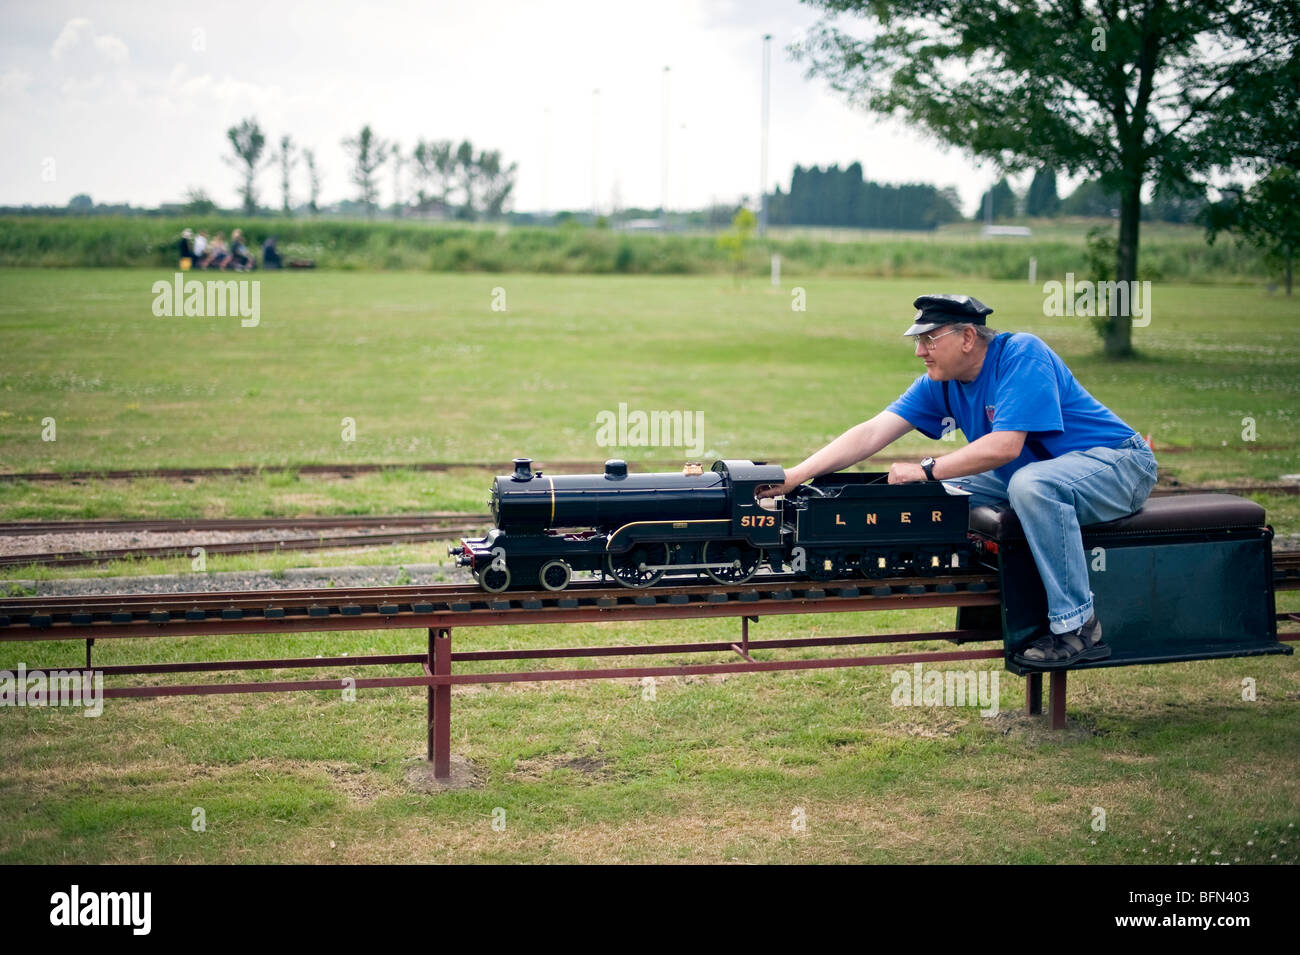 Miniature railway enthusiast rides a miniature train in Canvey Island, Essex. - Stock Image